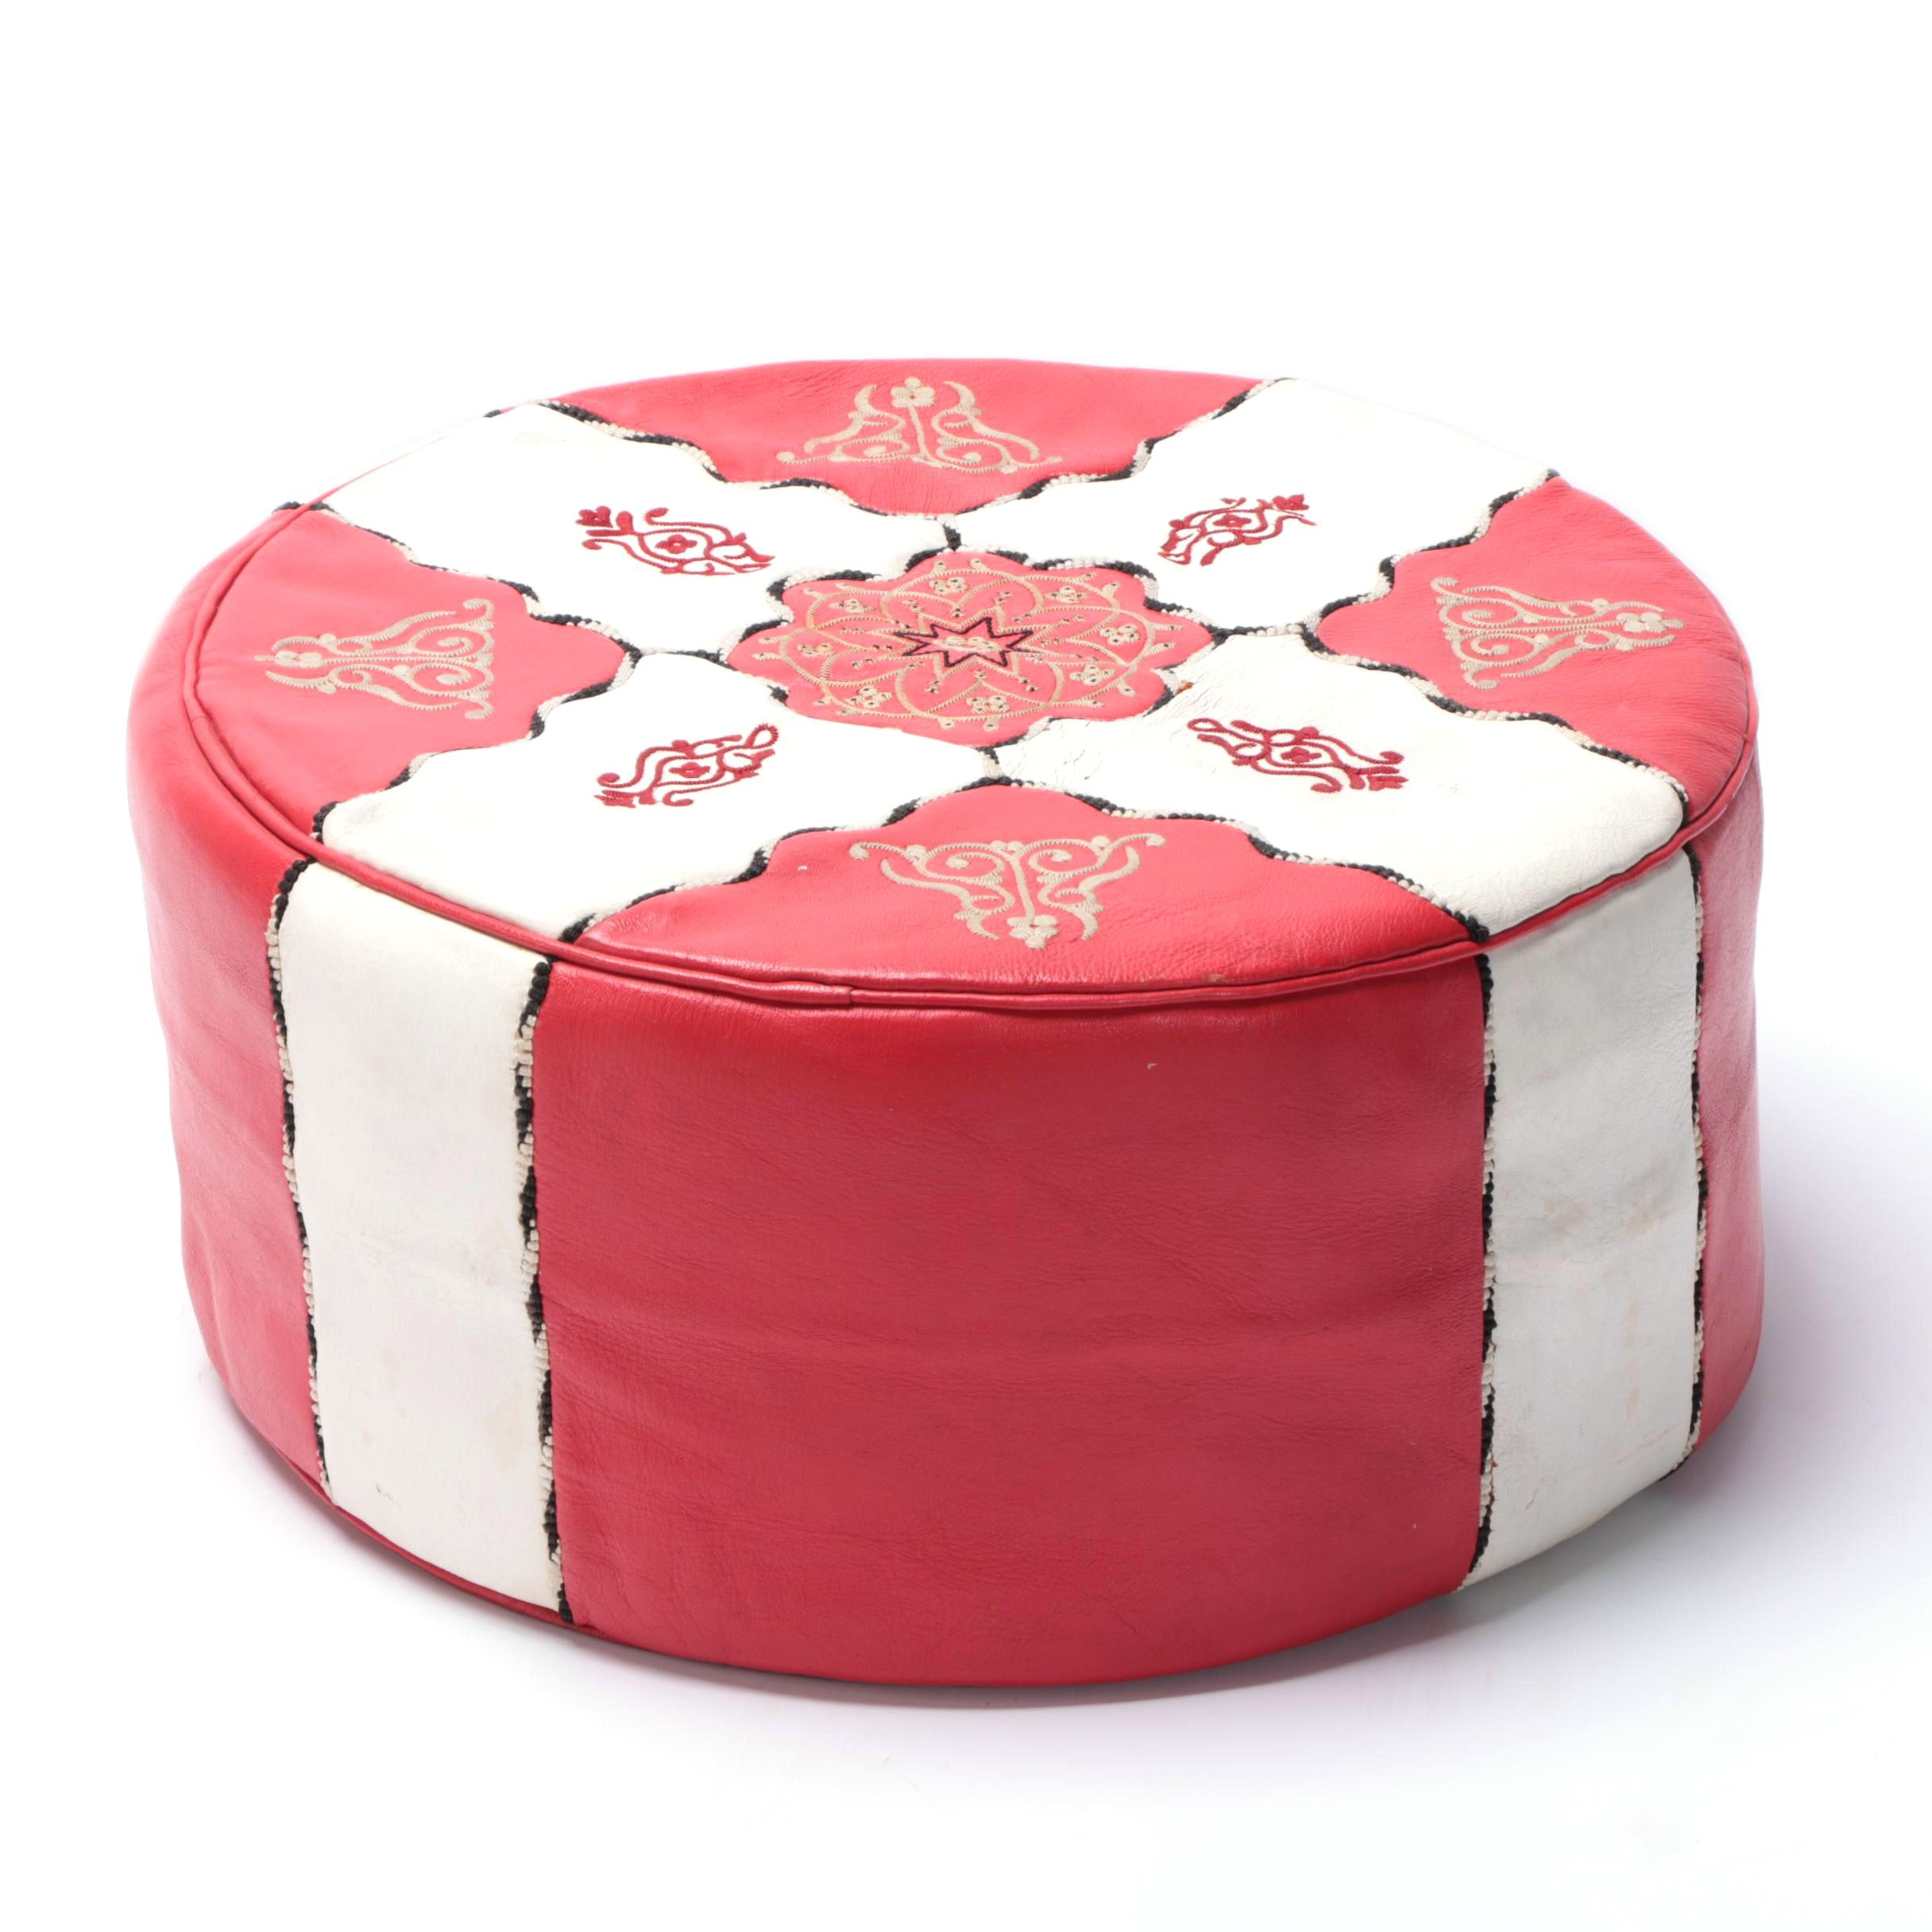 Faux Leather Embroidered Red and White Pouf